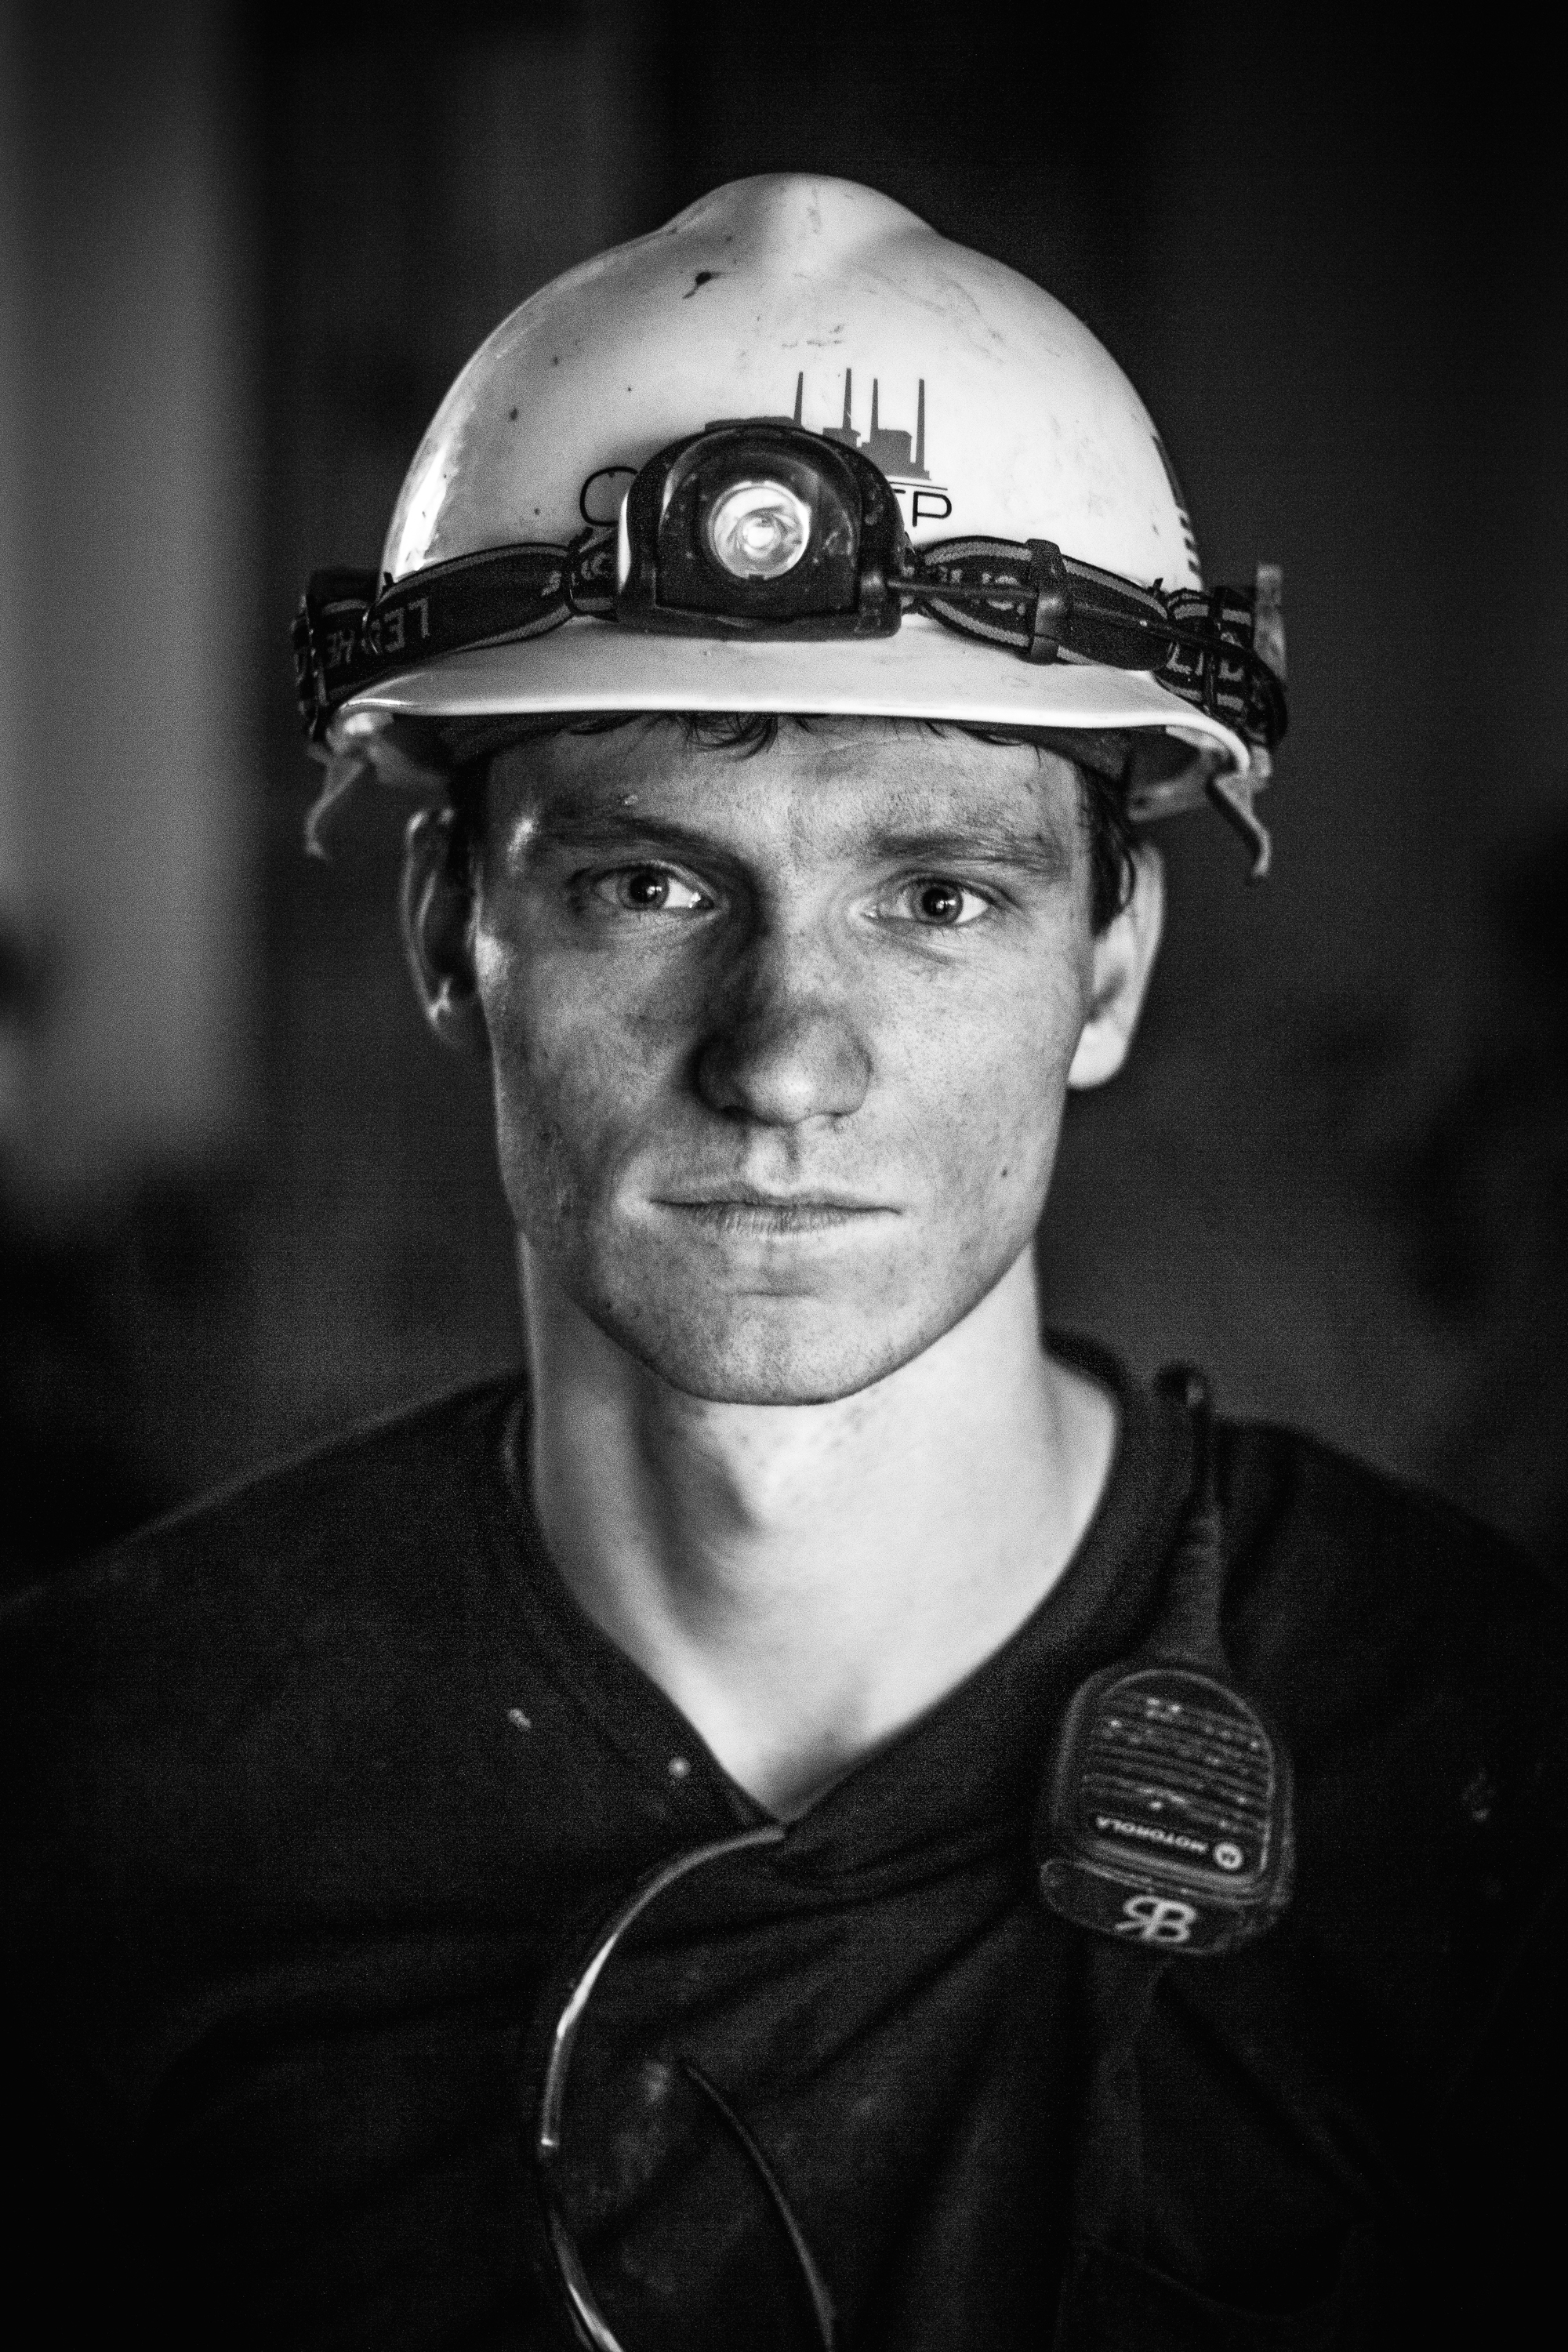 Working in the Coal fired power plant is a hot and dirty job but the pay is good. Ryan started out making $24 an hour with many opportunities for overtime. But he was the last employee to be hired and could be the first to be let go if the plant closes half of its units ahead of schedule. In the portraits below he poses for me and momentarily lets his tiresome night schedule pull his gaze into the distance.